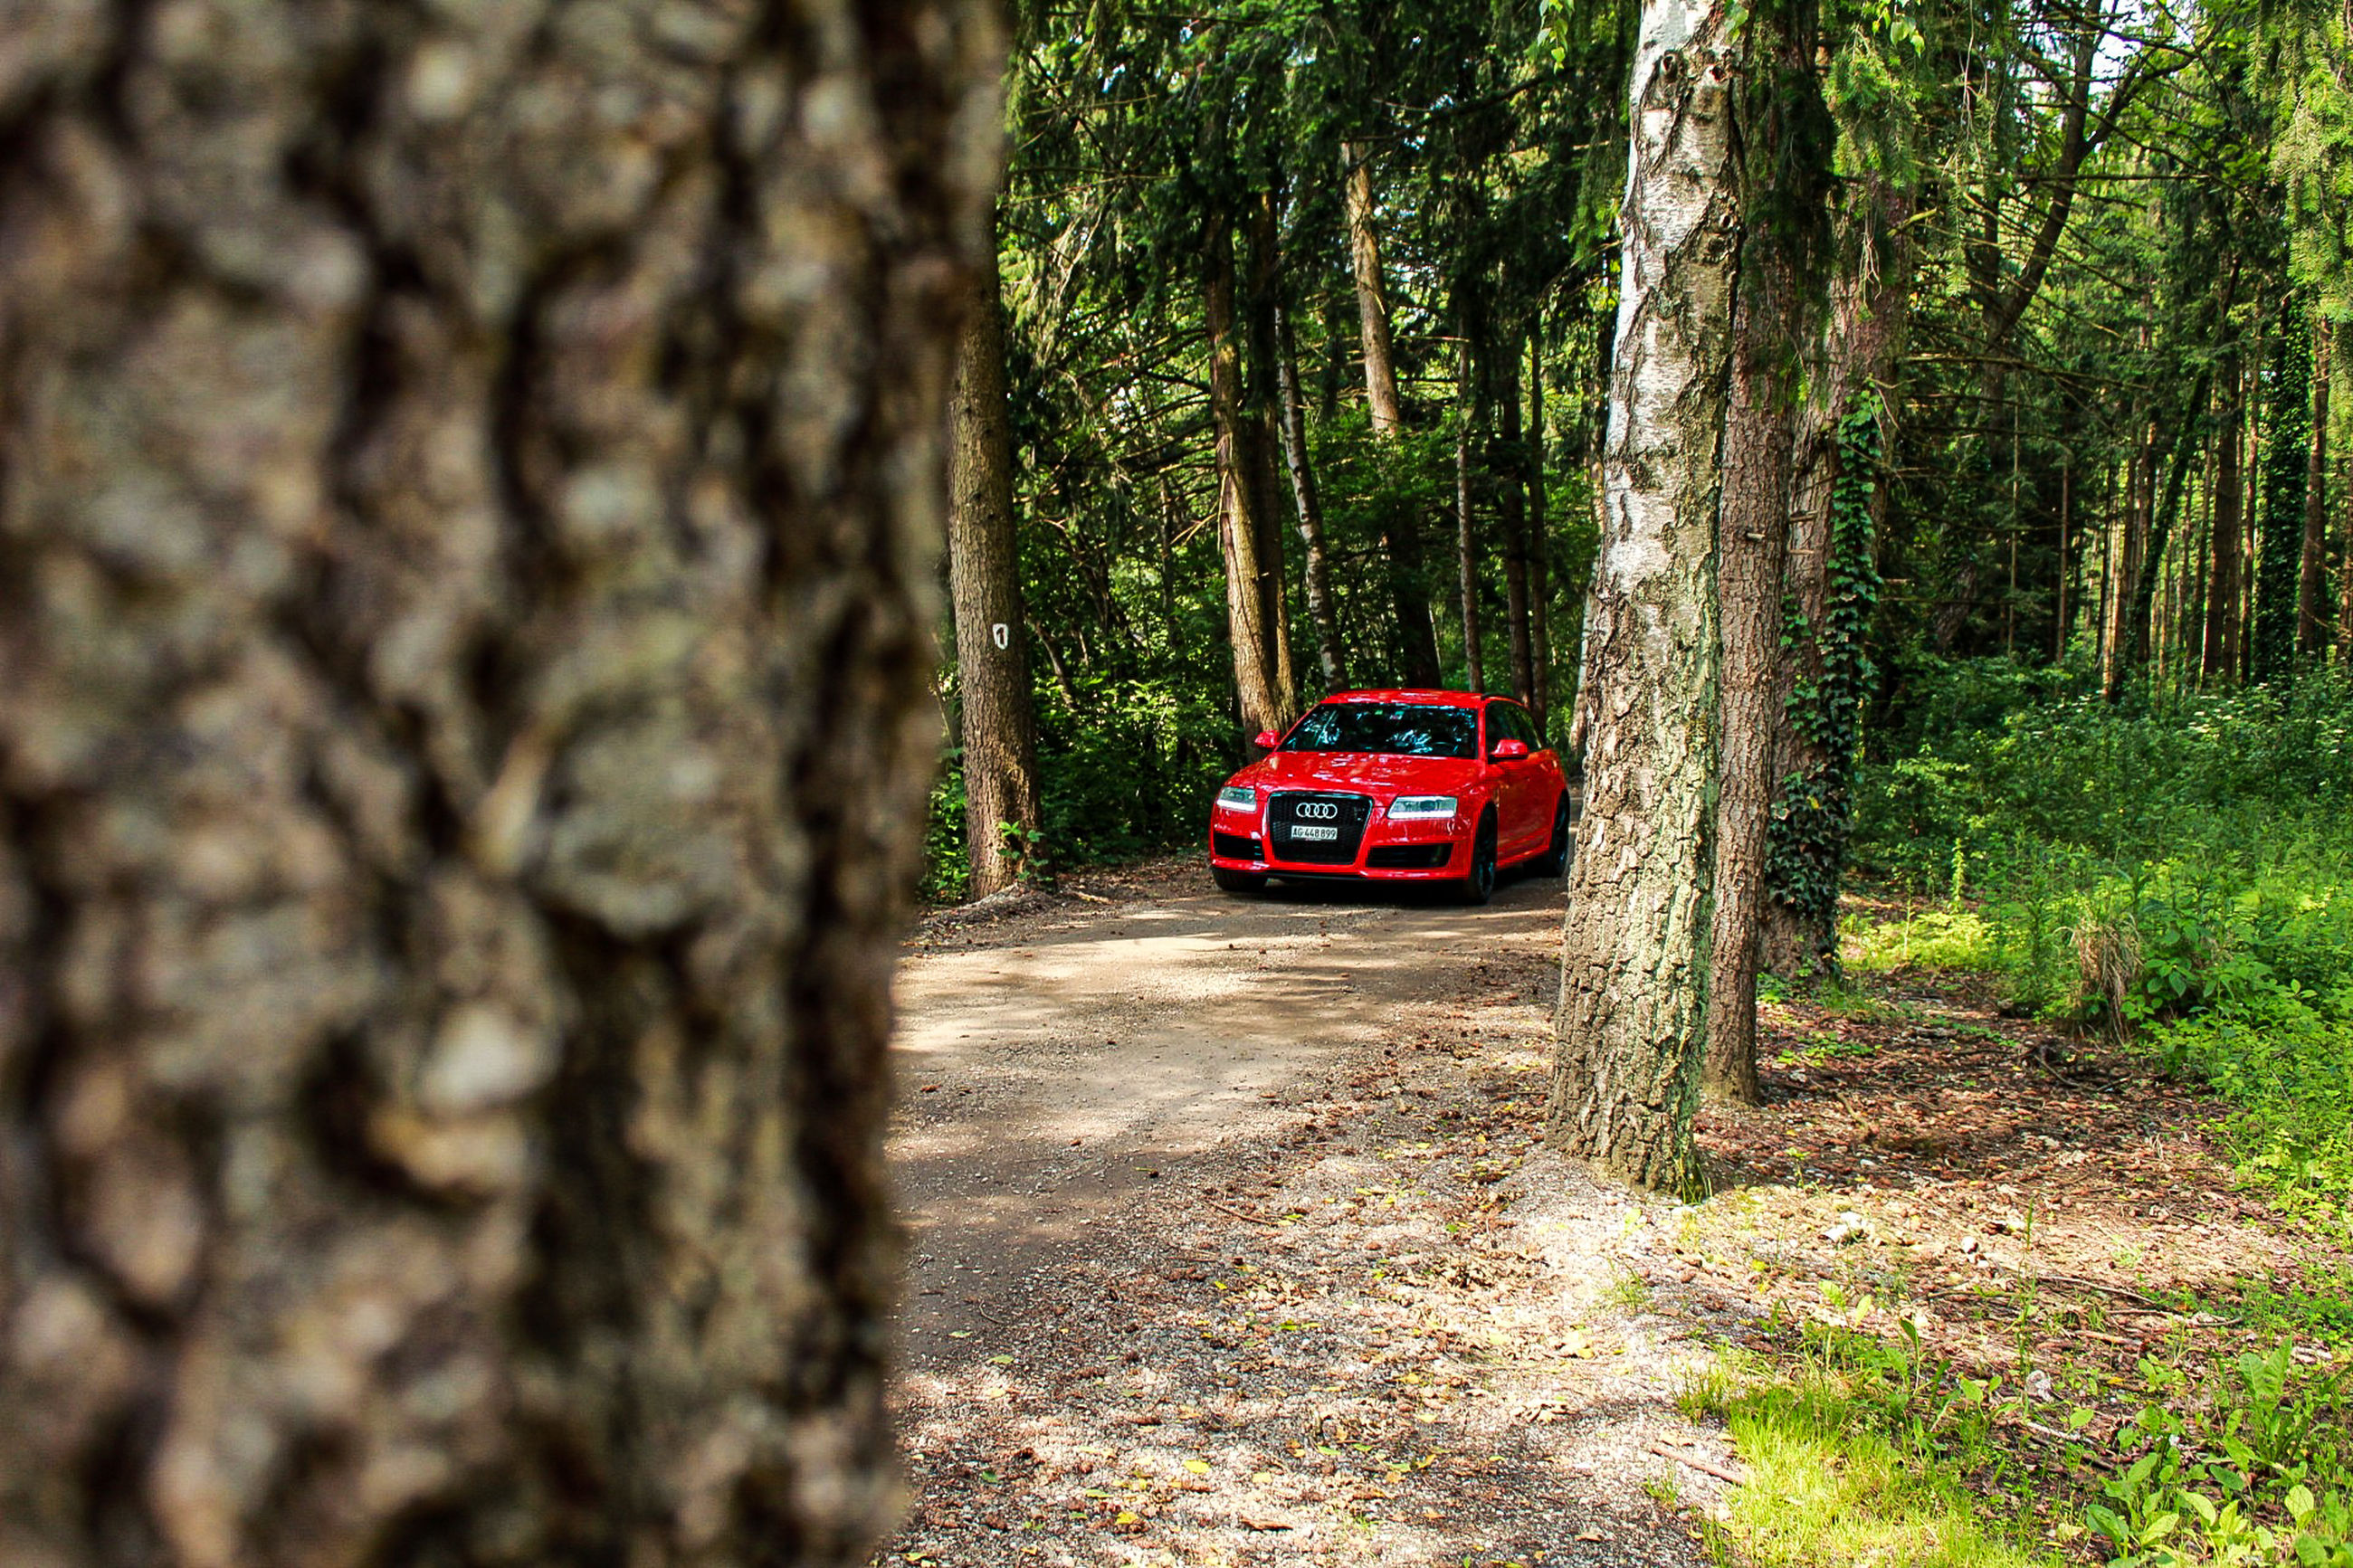 tree, mode of transportation, tree trunk, plant, car, trunk, transportation, motor vehicle, land vehicle, nature, land, forest, day, no people, outdoors, road, woodland, growth, focus on background, selective focus